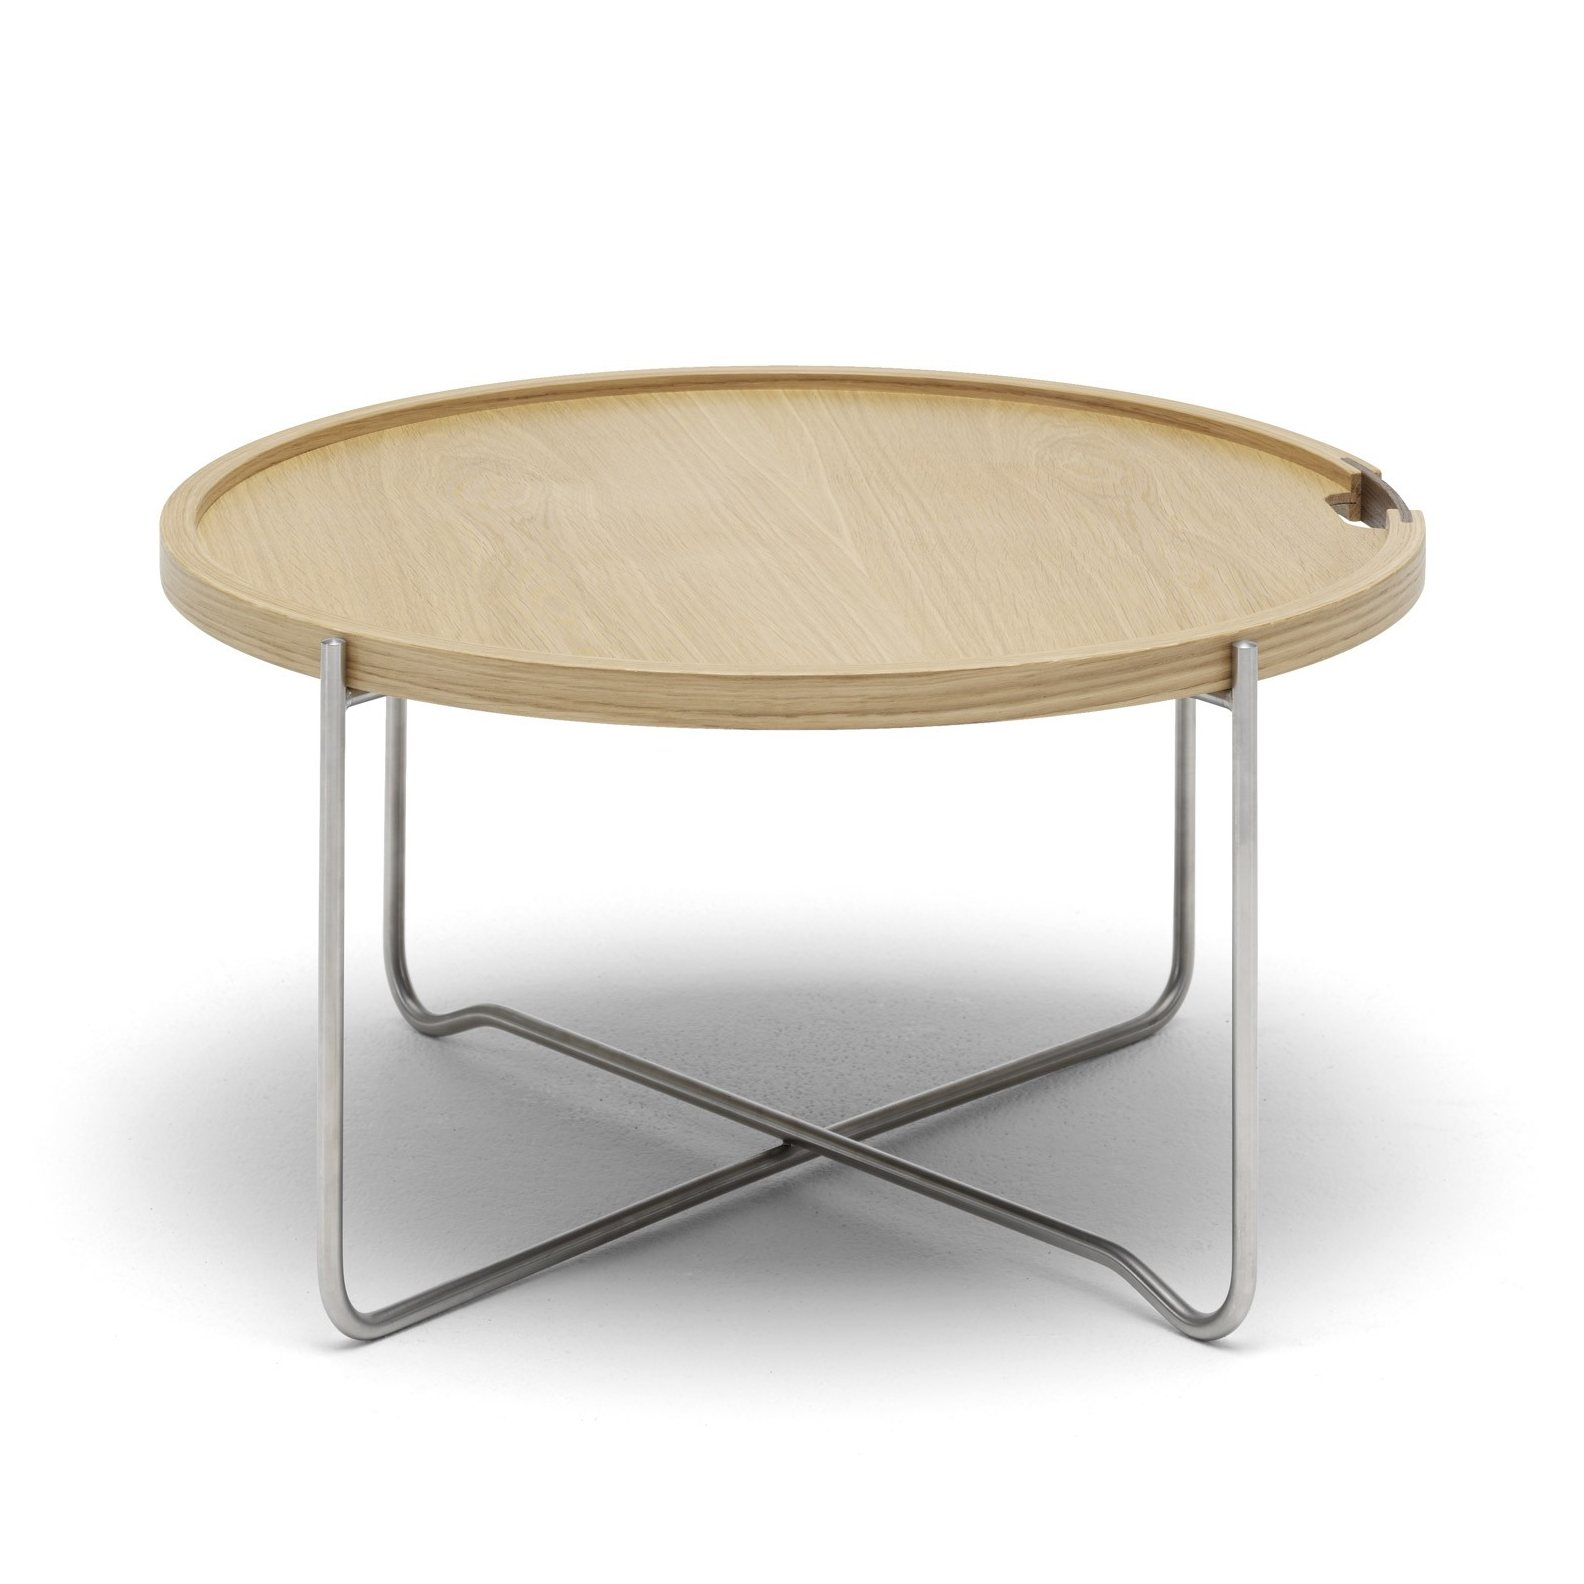 CH417 Tray Table by Hans J Wegner for Carl Hansen Sn